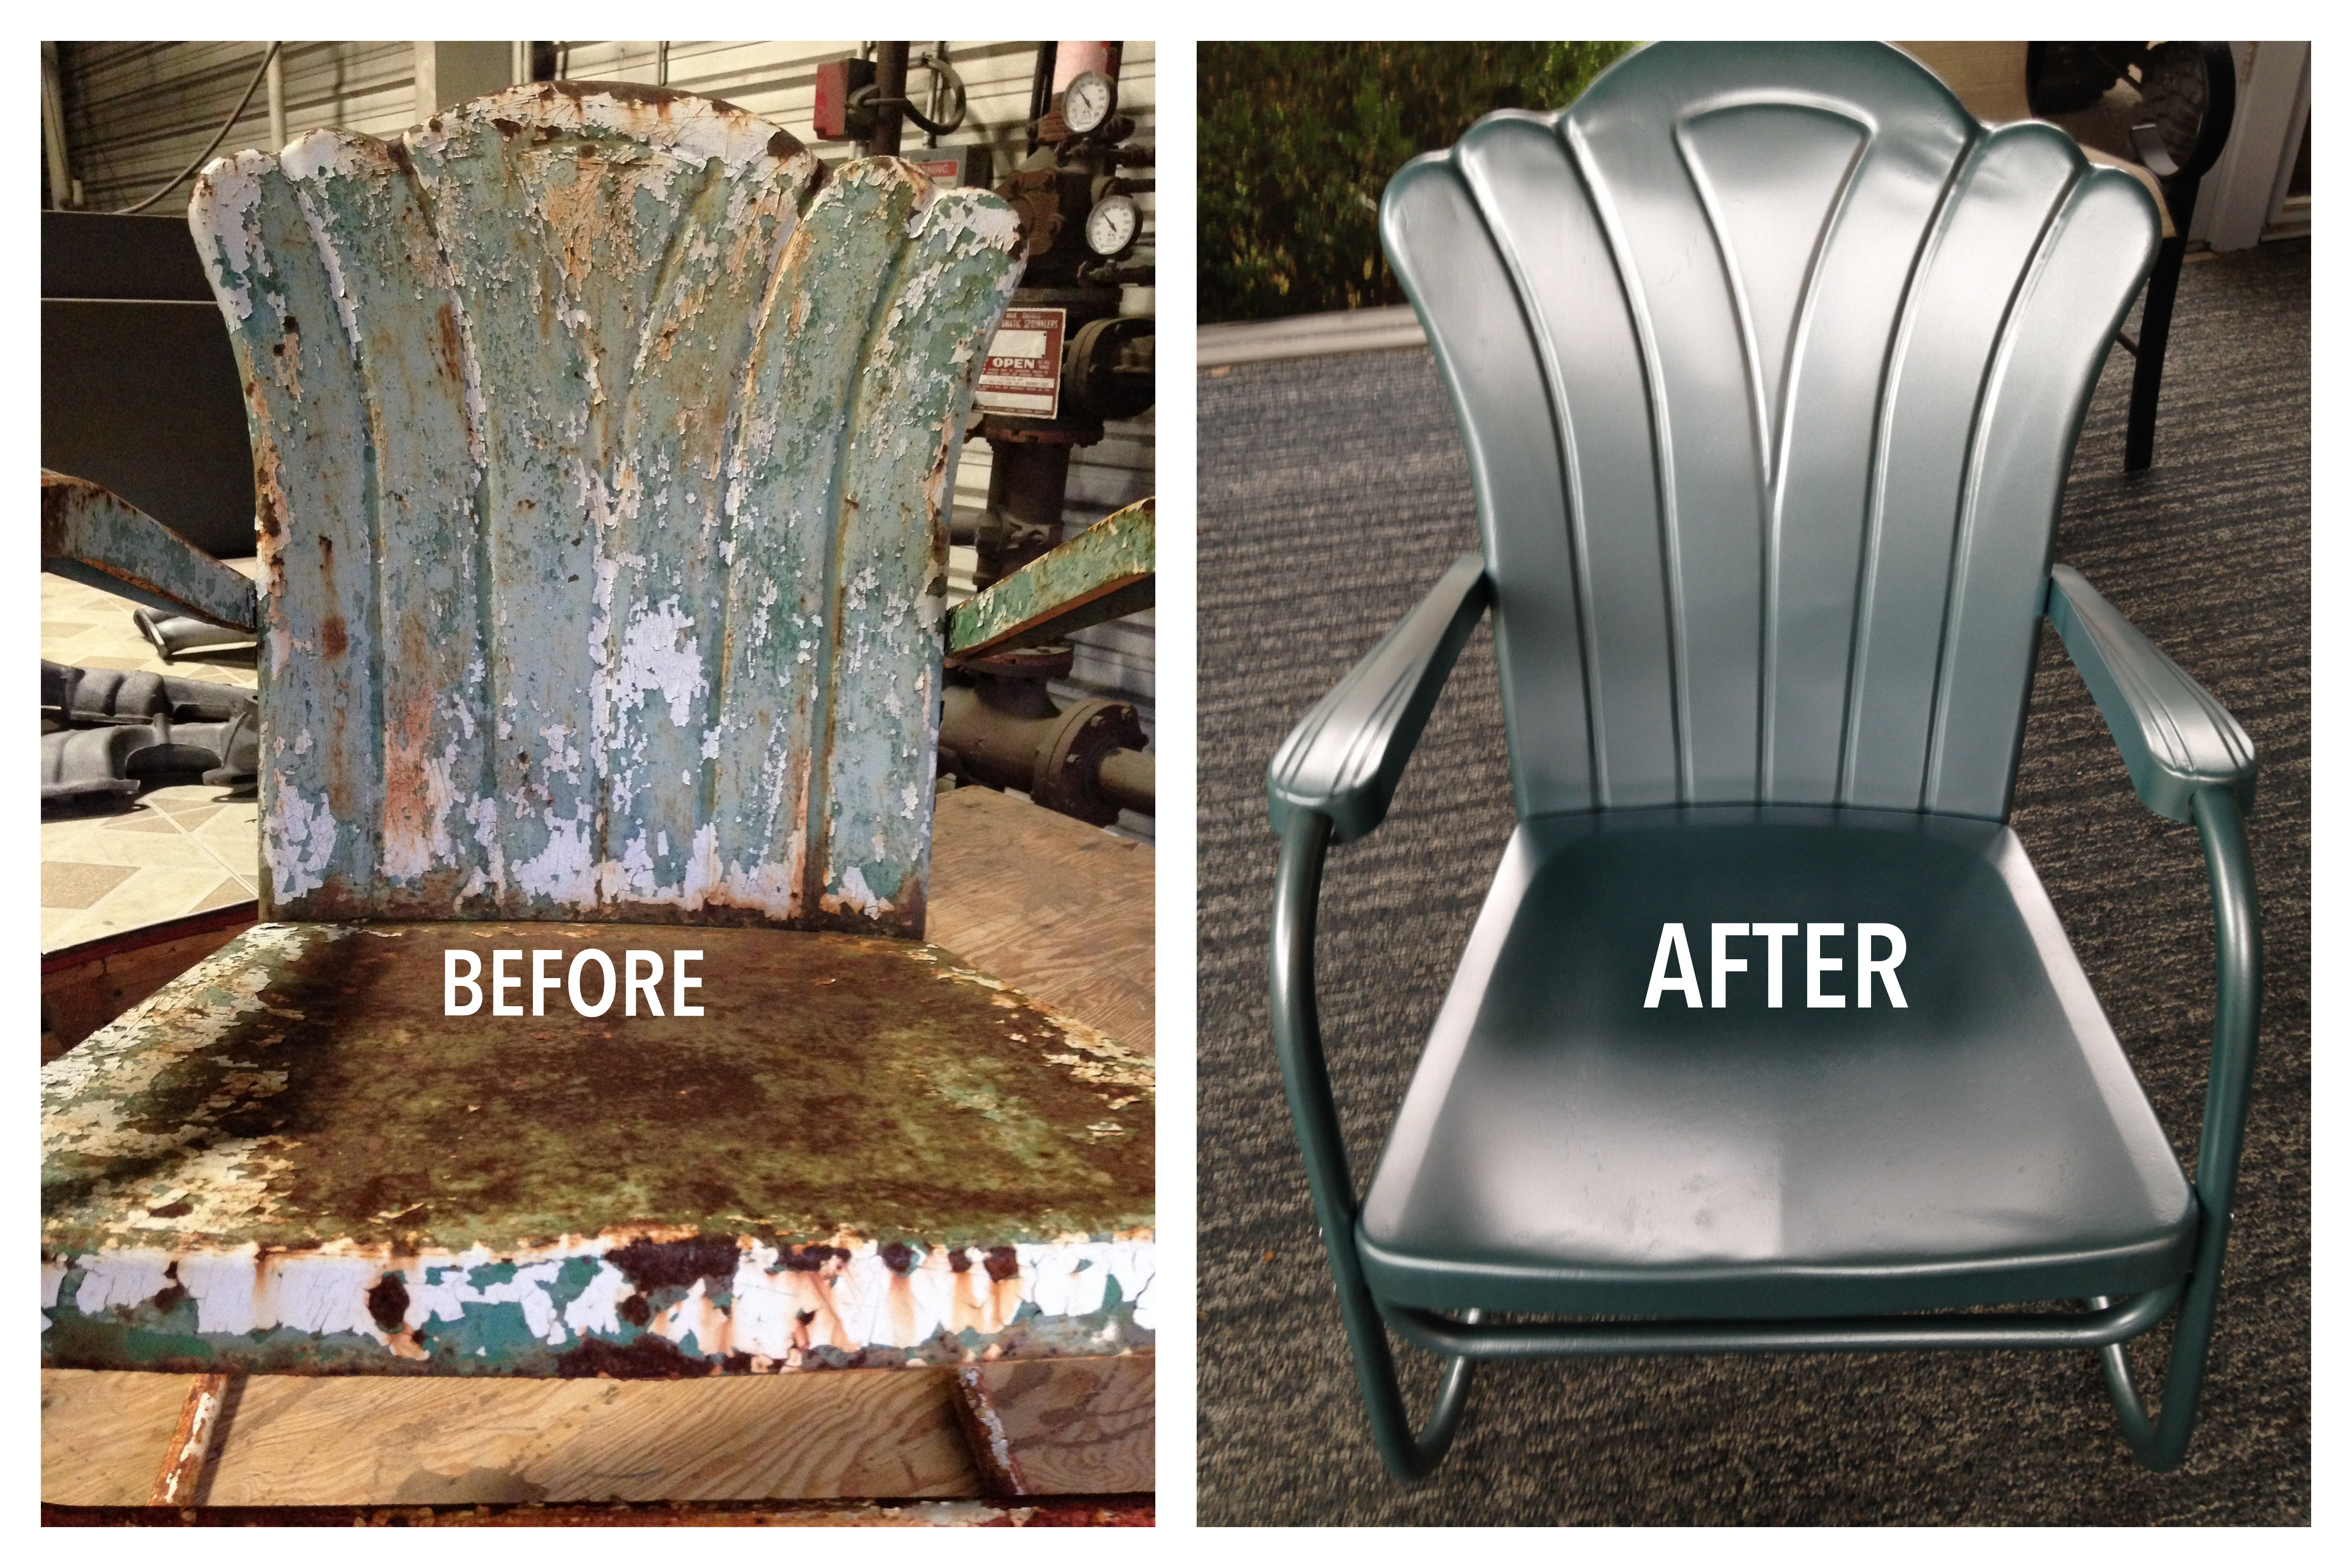 Restoring Rusted Patio Chairs - Xtreme Temperature Coatings CT